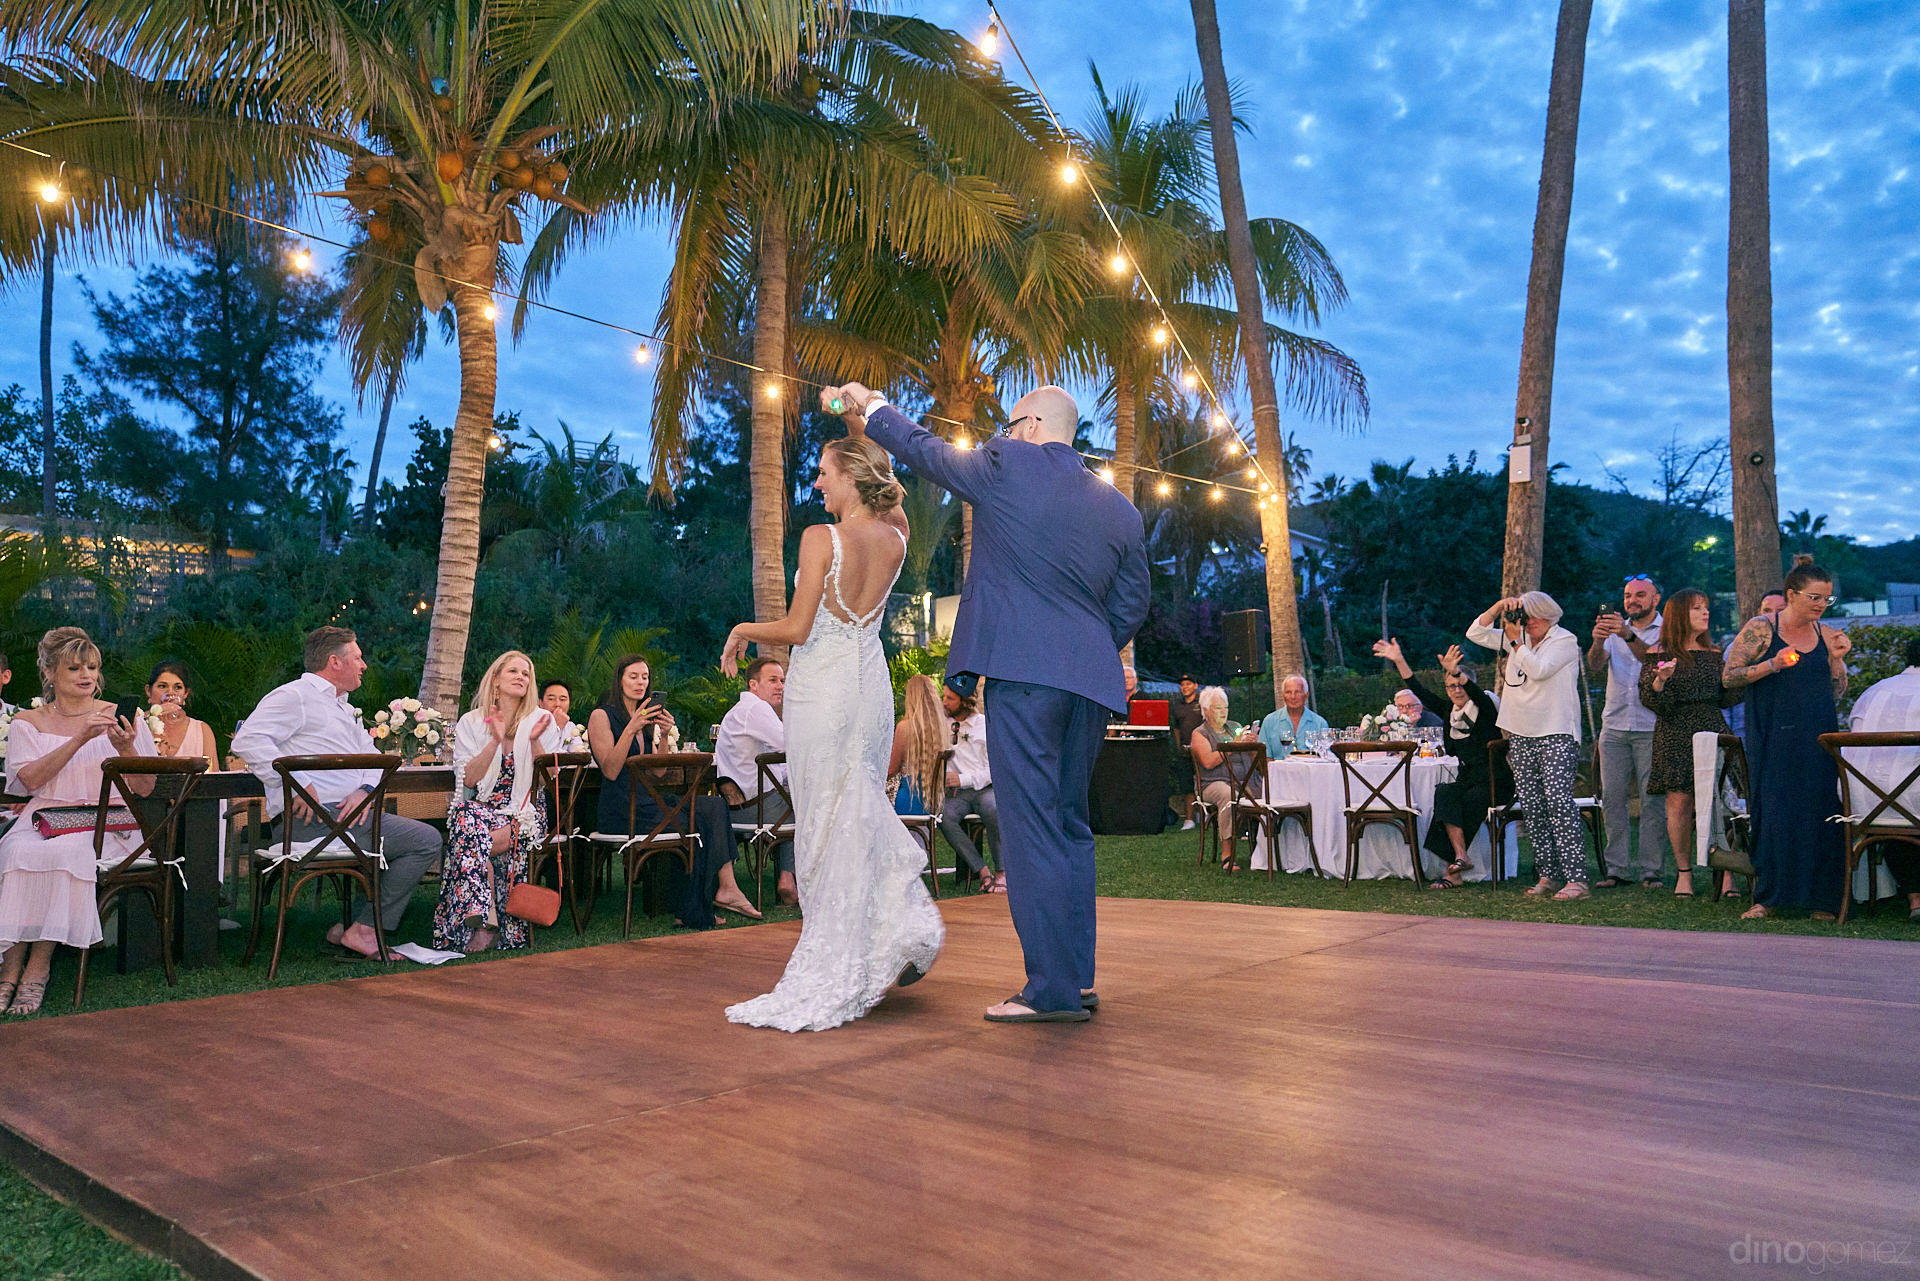 Los Cabos Fashion Photographer At High End Wedding